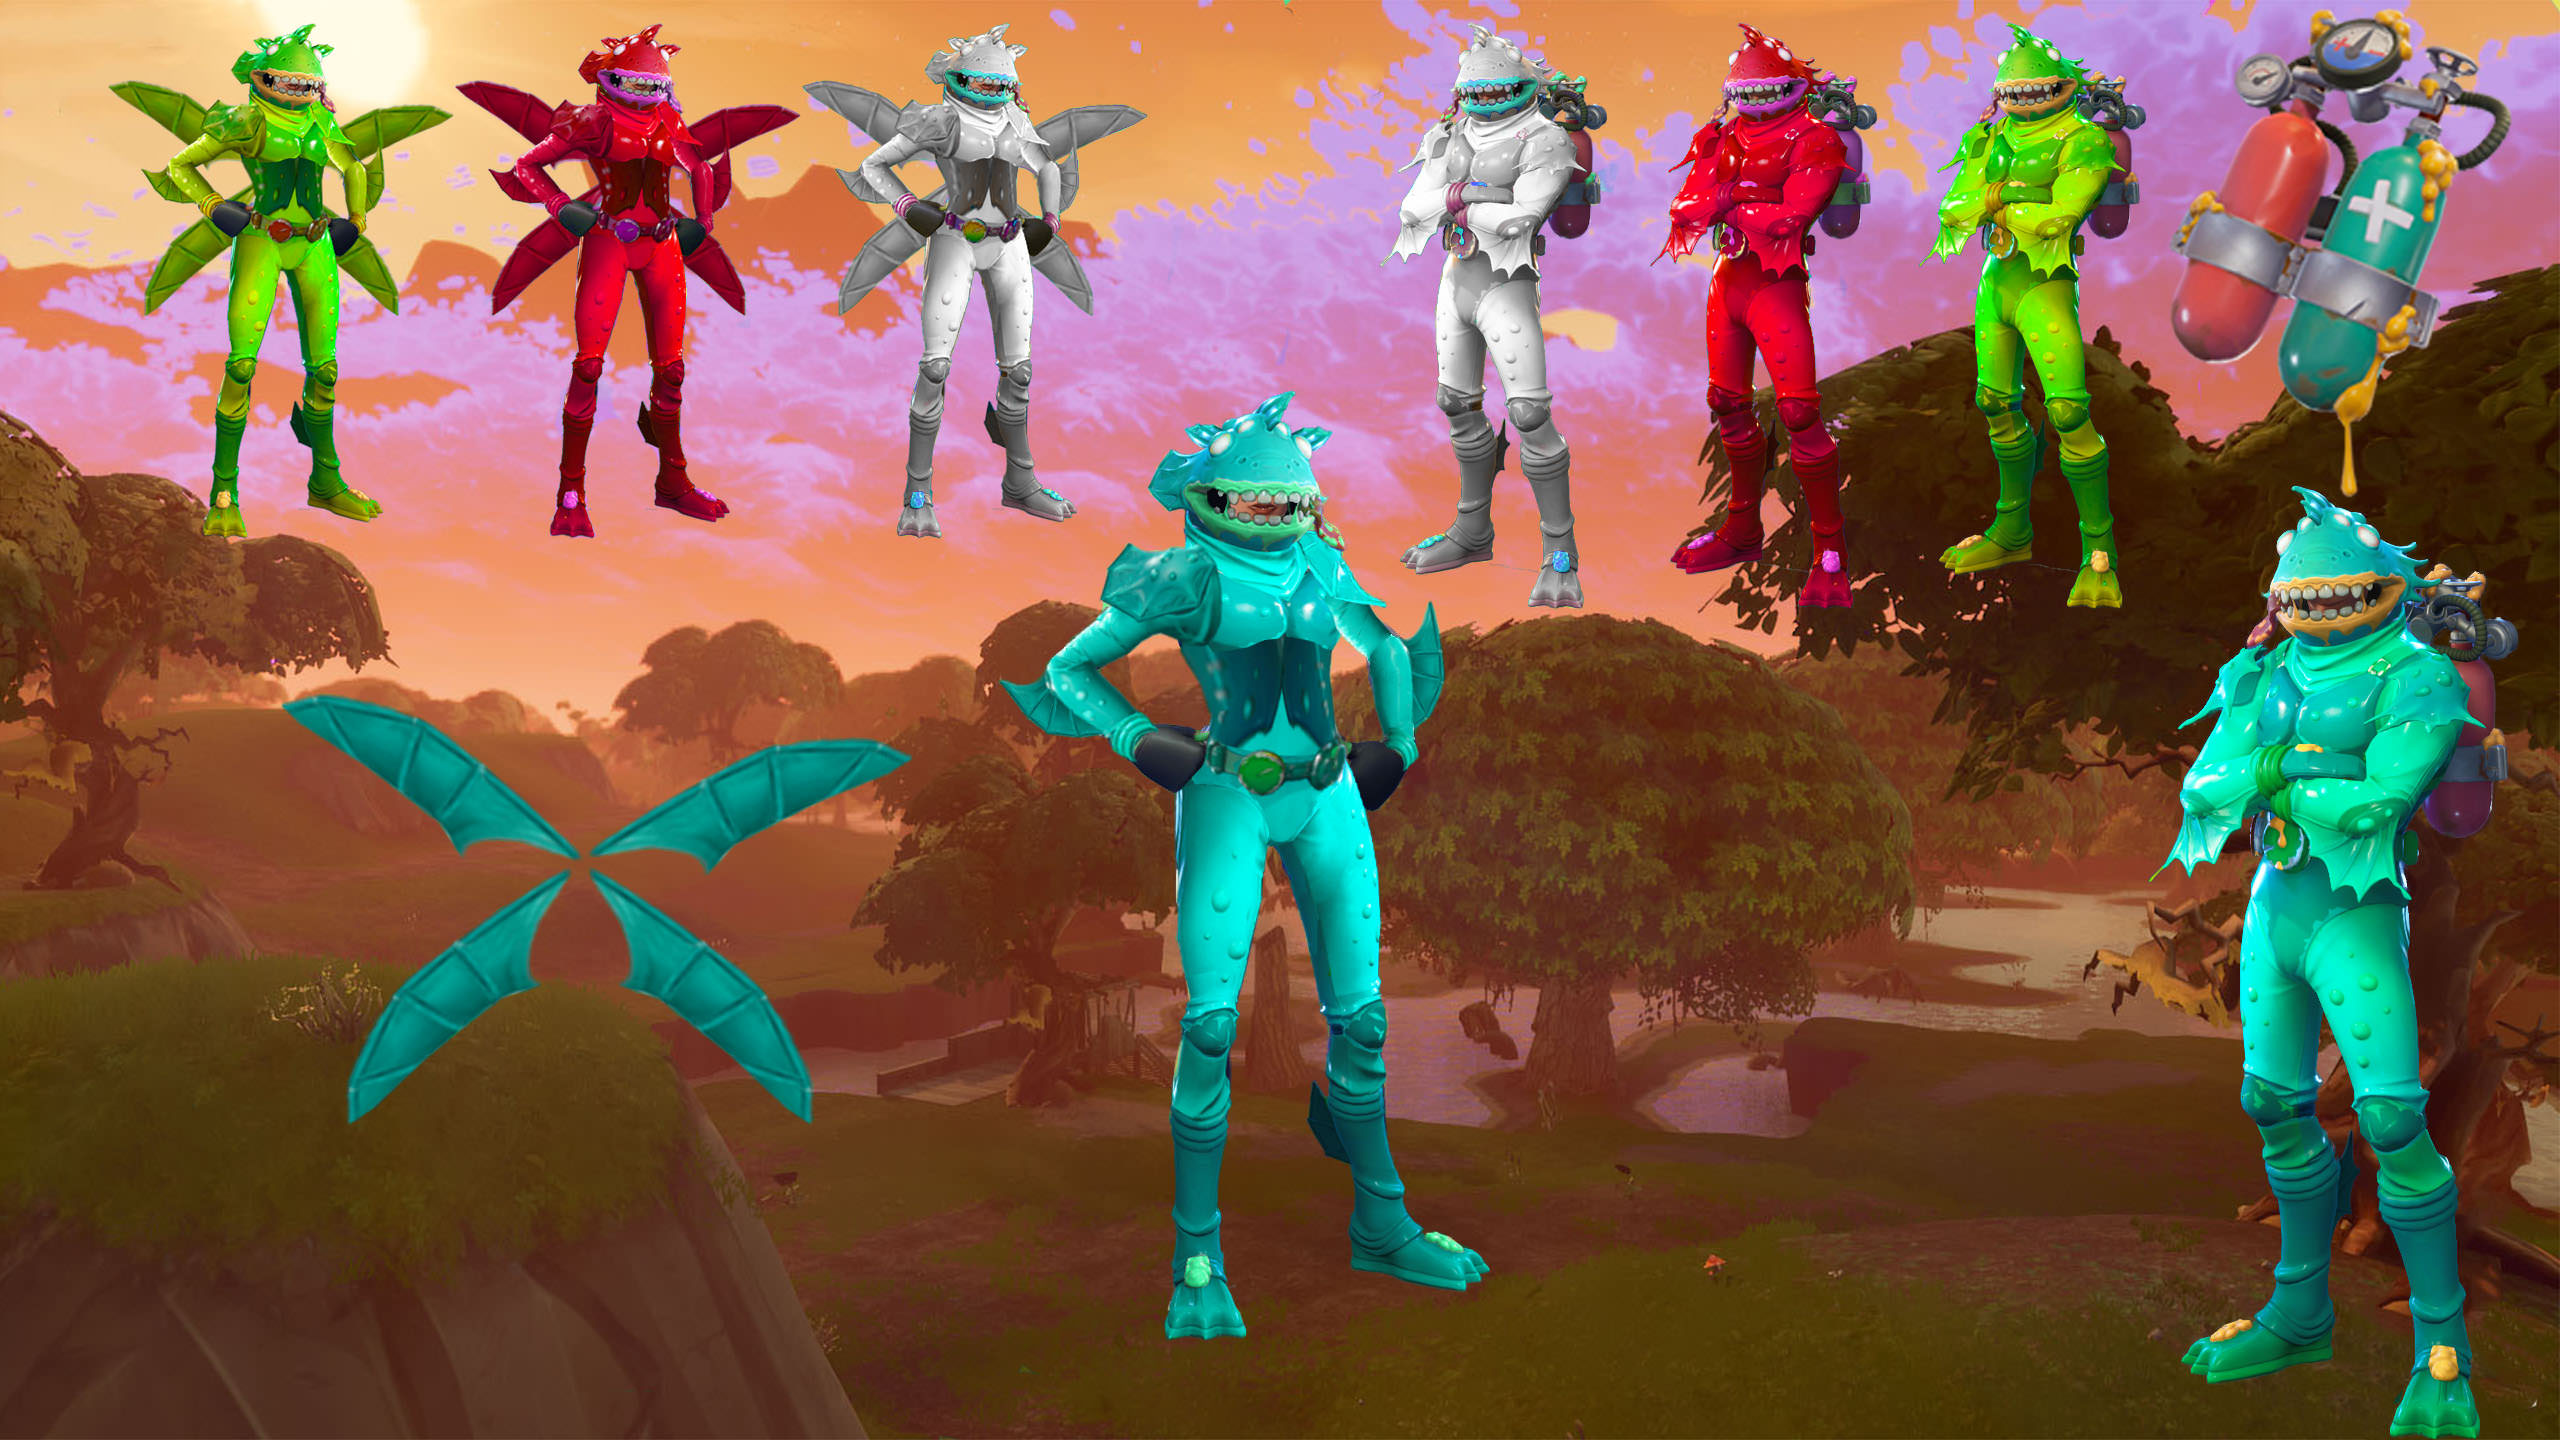 FORTNITE moisty merman and moisty mermaid   Album on Imgur 2560x1440